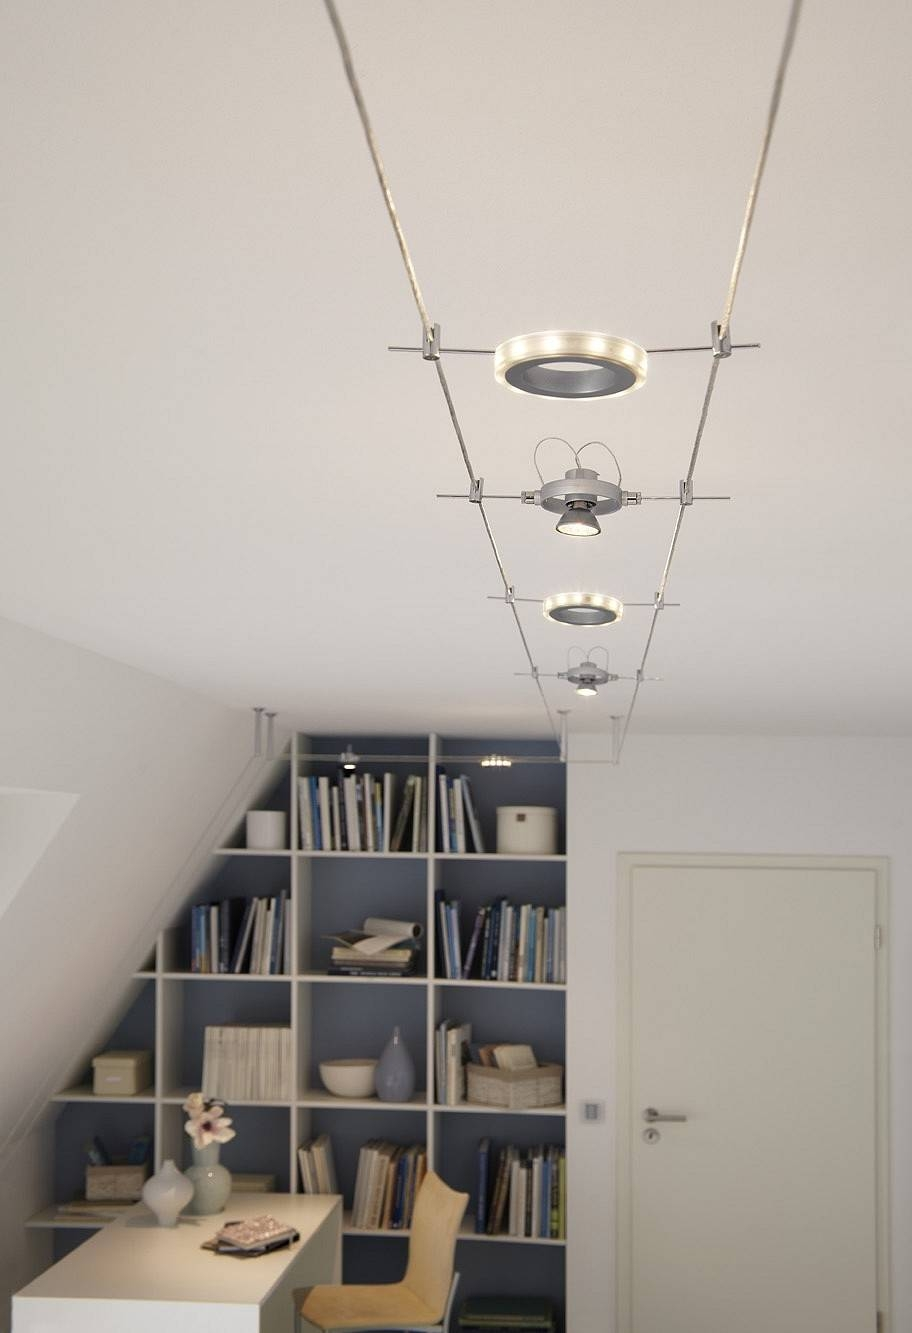 How To Configure A Track Lighting System inside Pendant Lighting for Track Systems (Image 4 of 15)